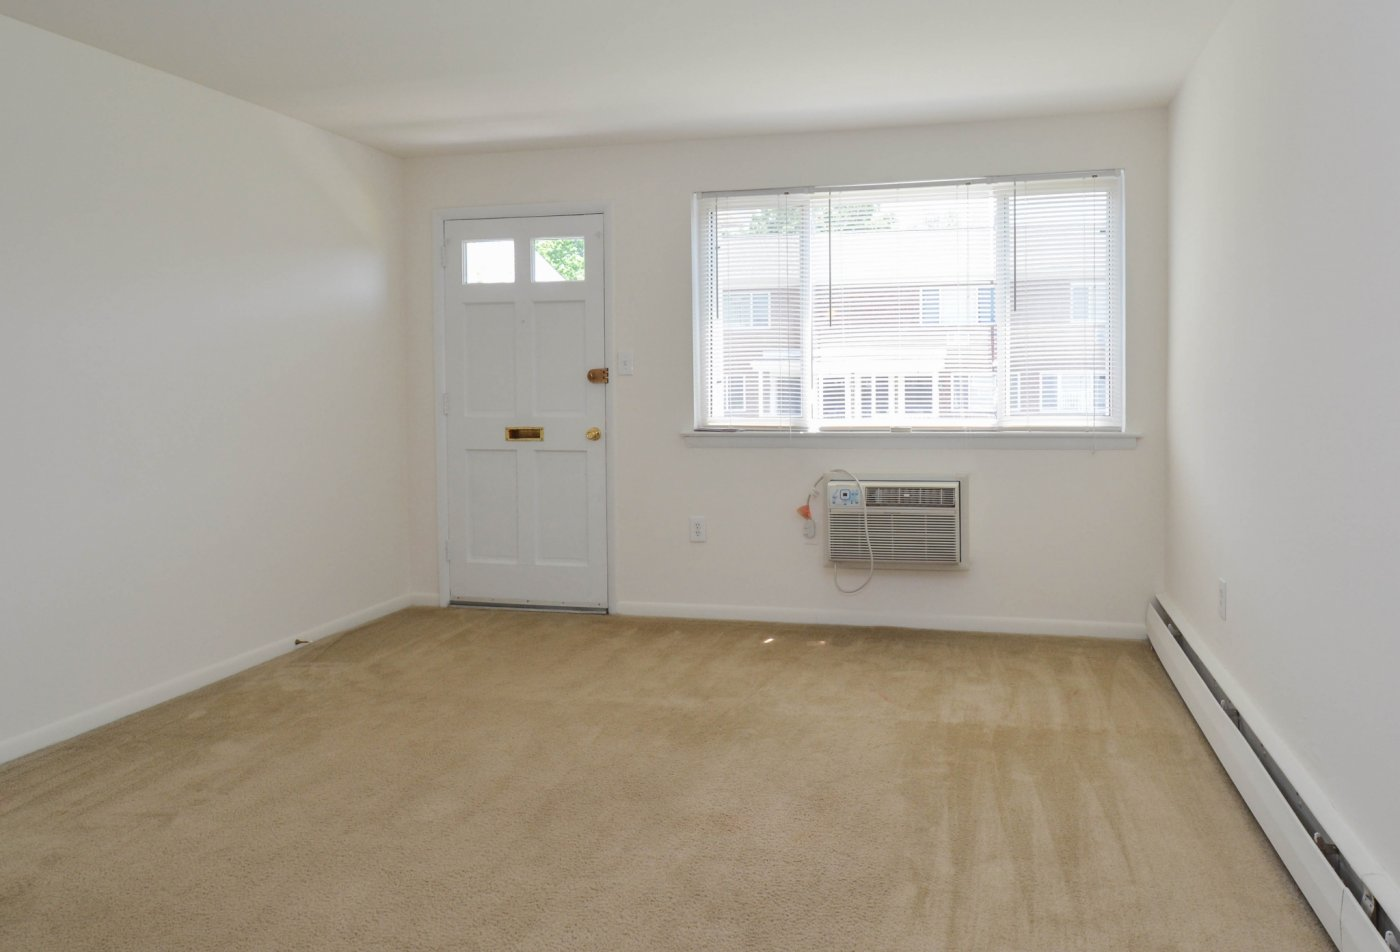 Spacious Living Room | Apartments in Aston, PA | Concord Court Apartments